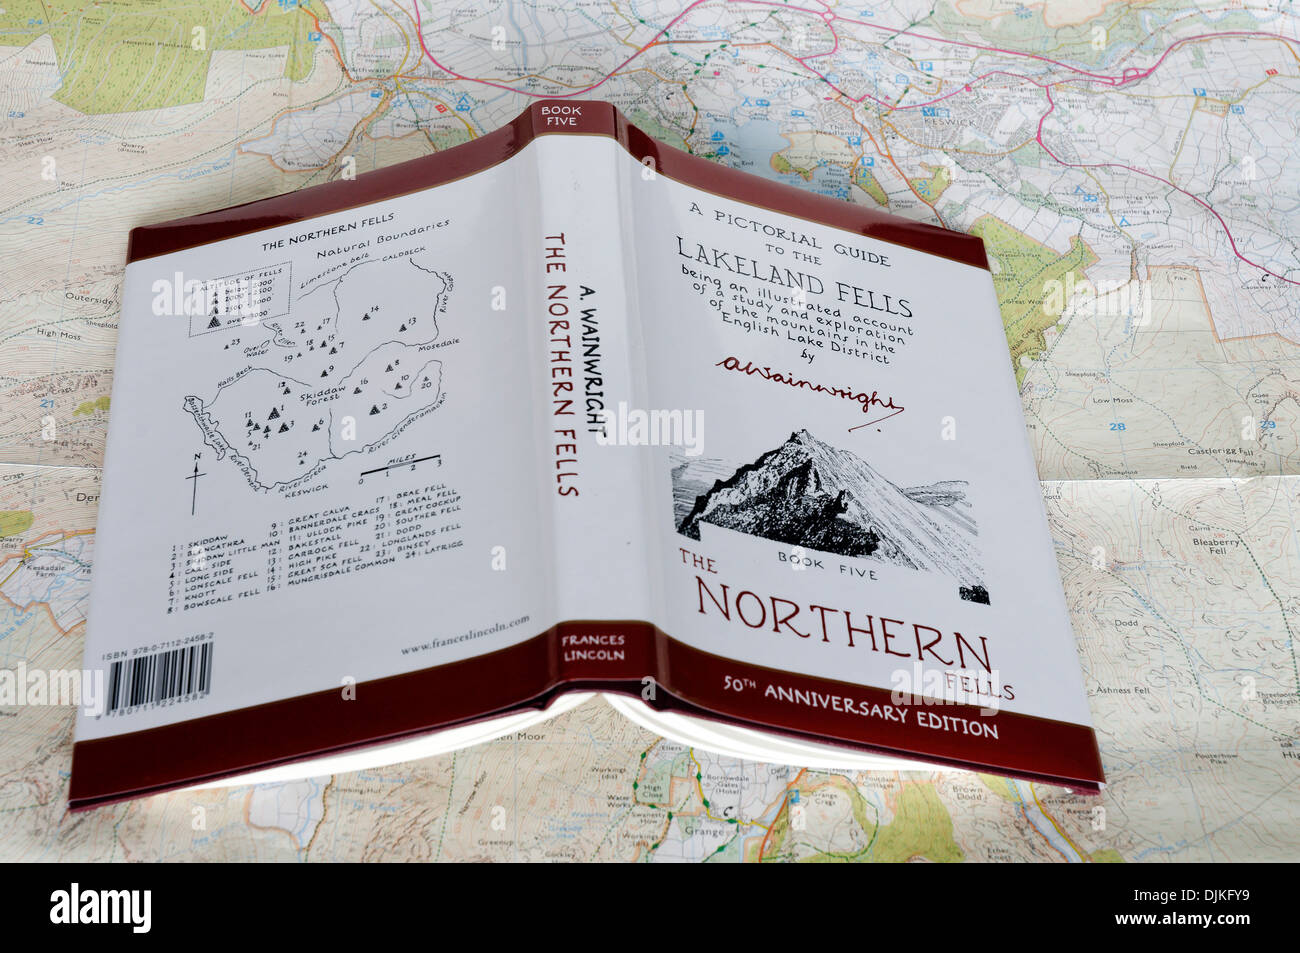 Map Of England 2100.Wainwright Walking Guide To The Lake District Of Nw England On A